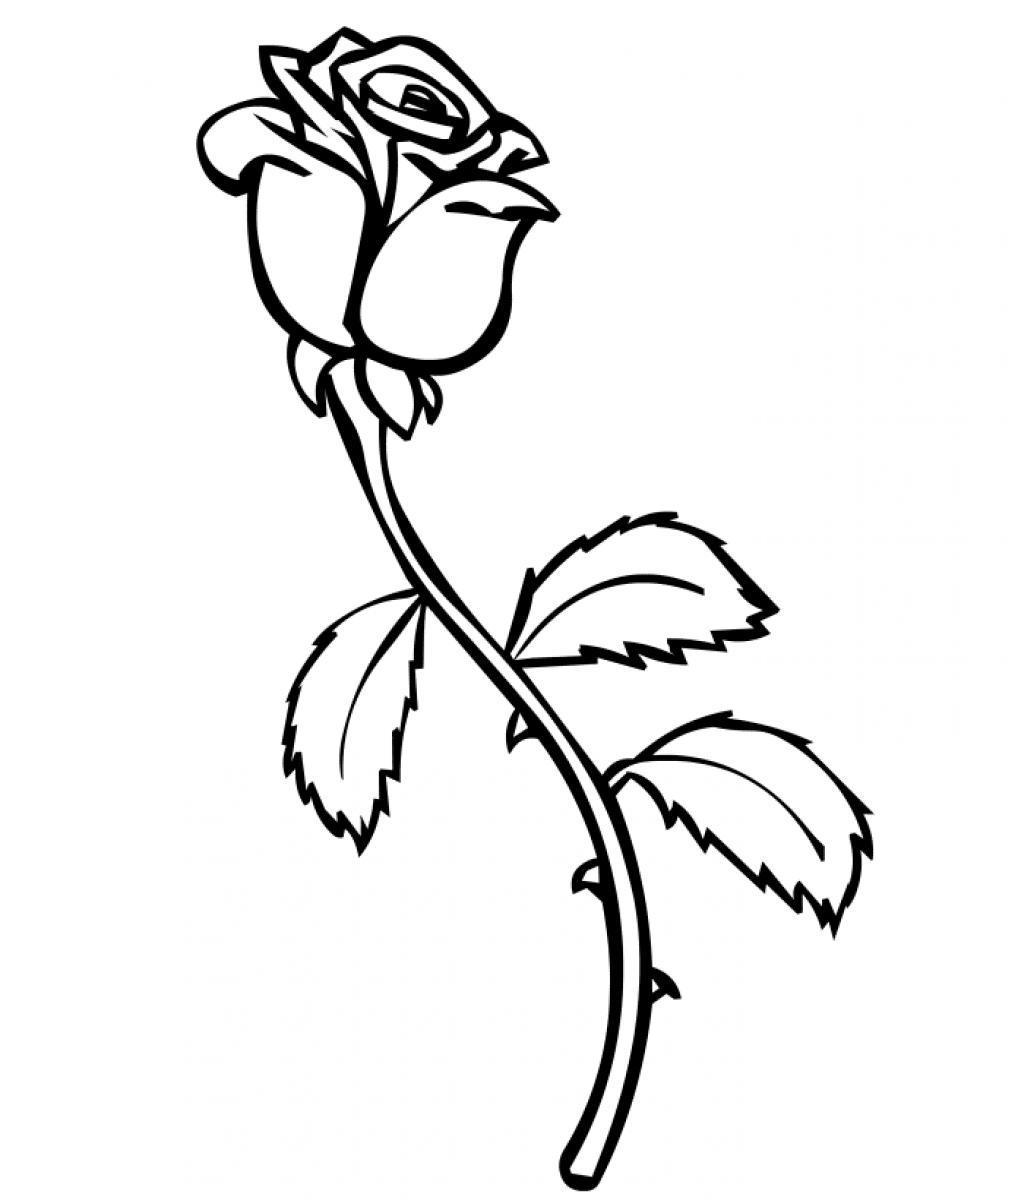 rose coloring pages for kids - Rose Coloring Pages